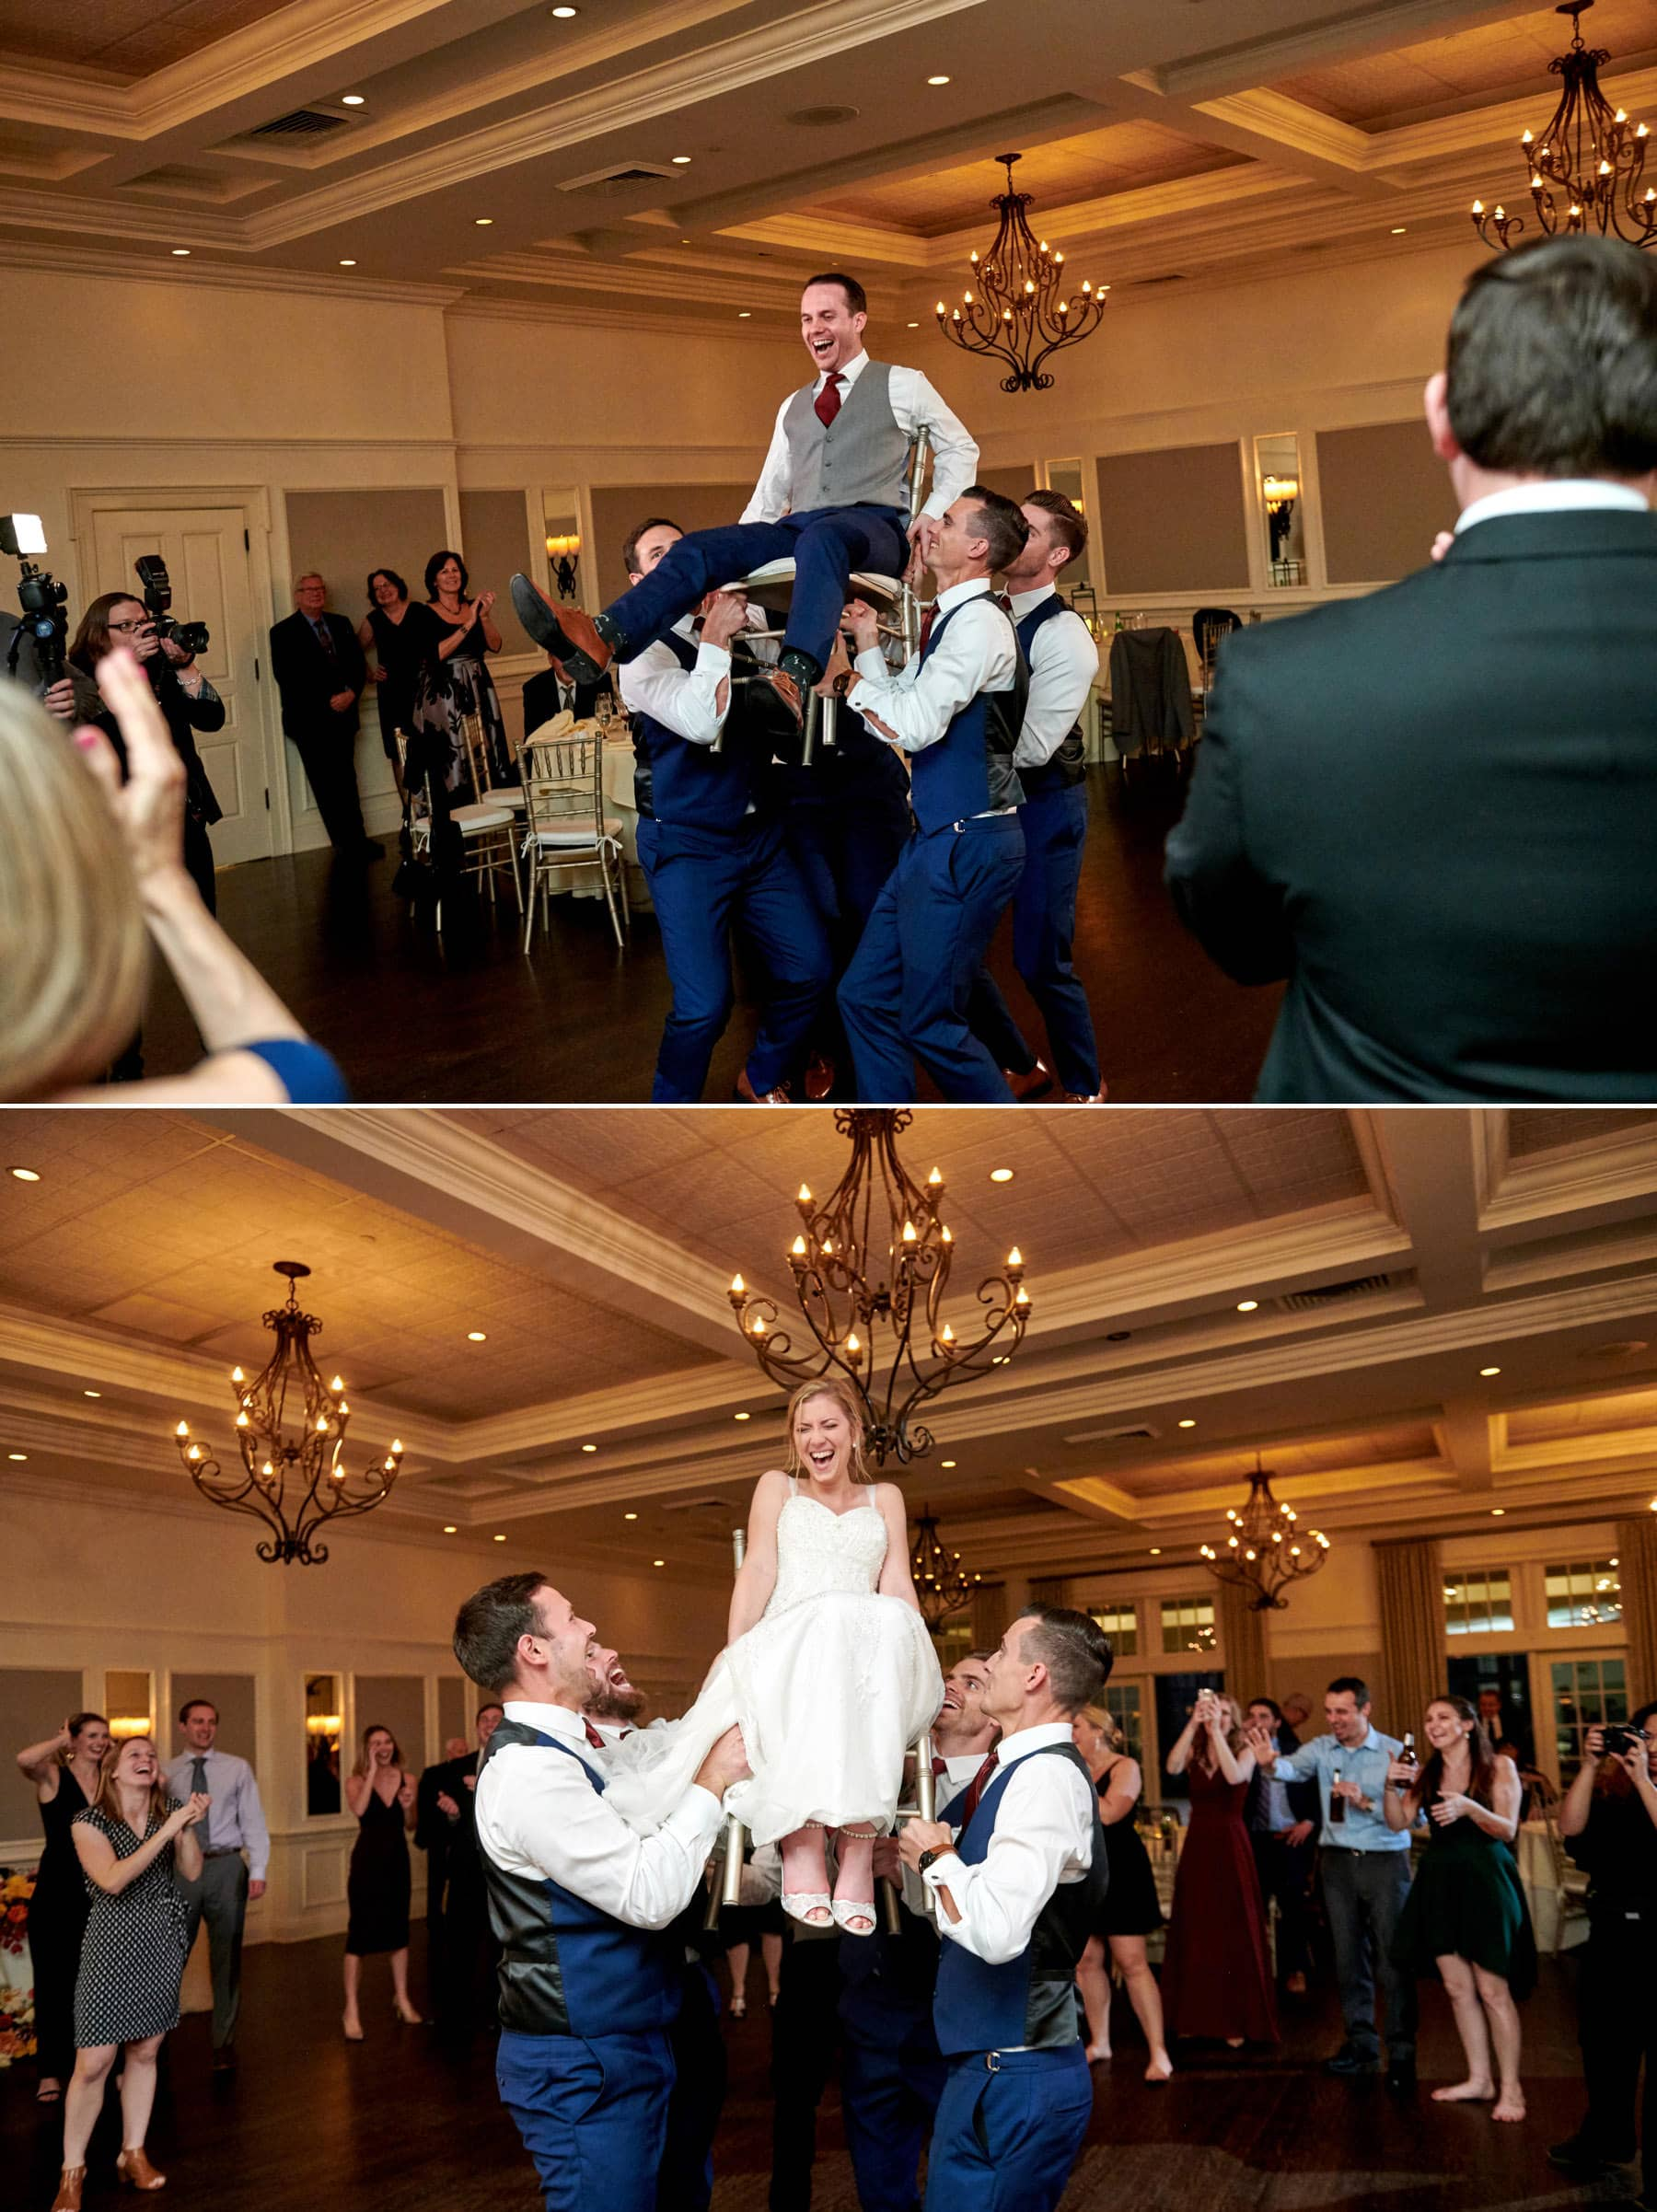 wedding chair lift photos at French Creek Golf Club